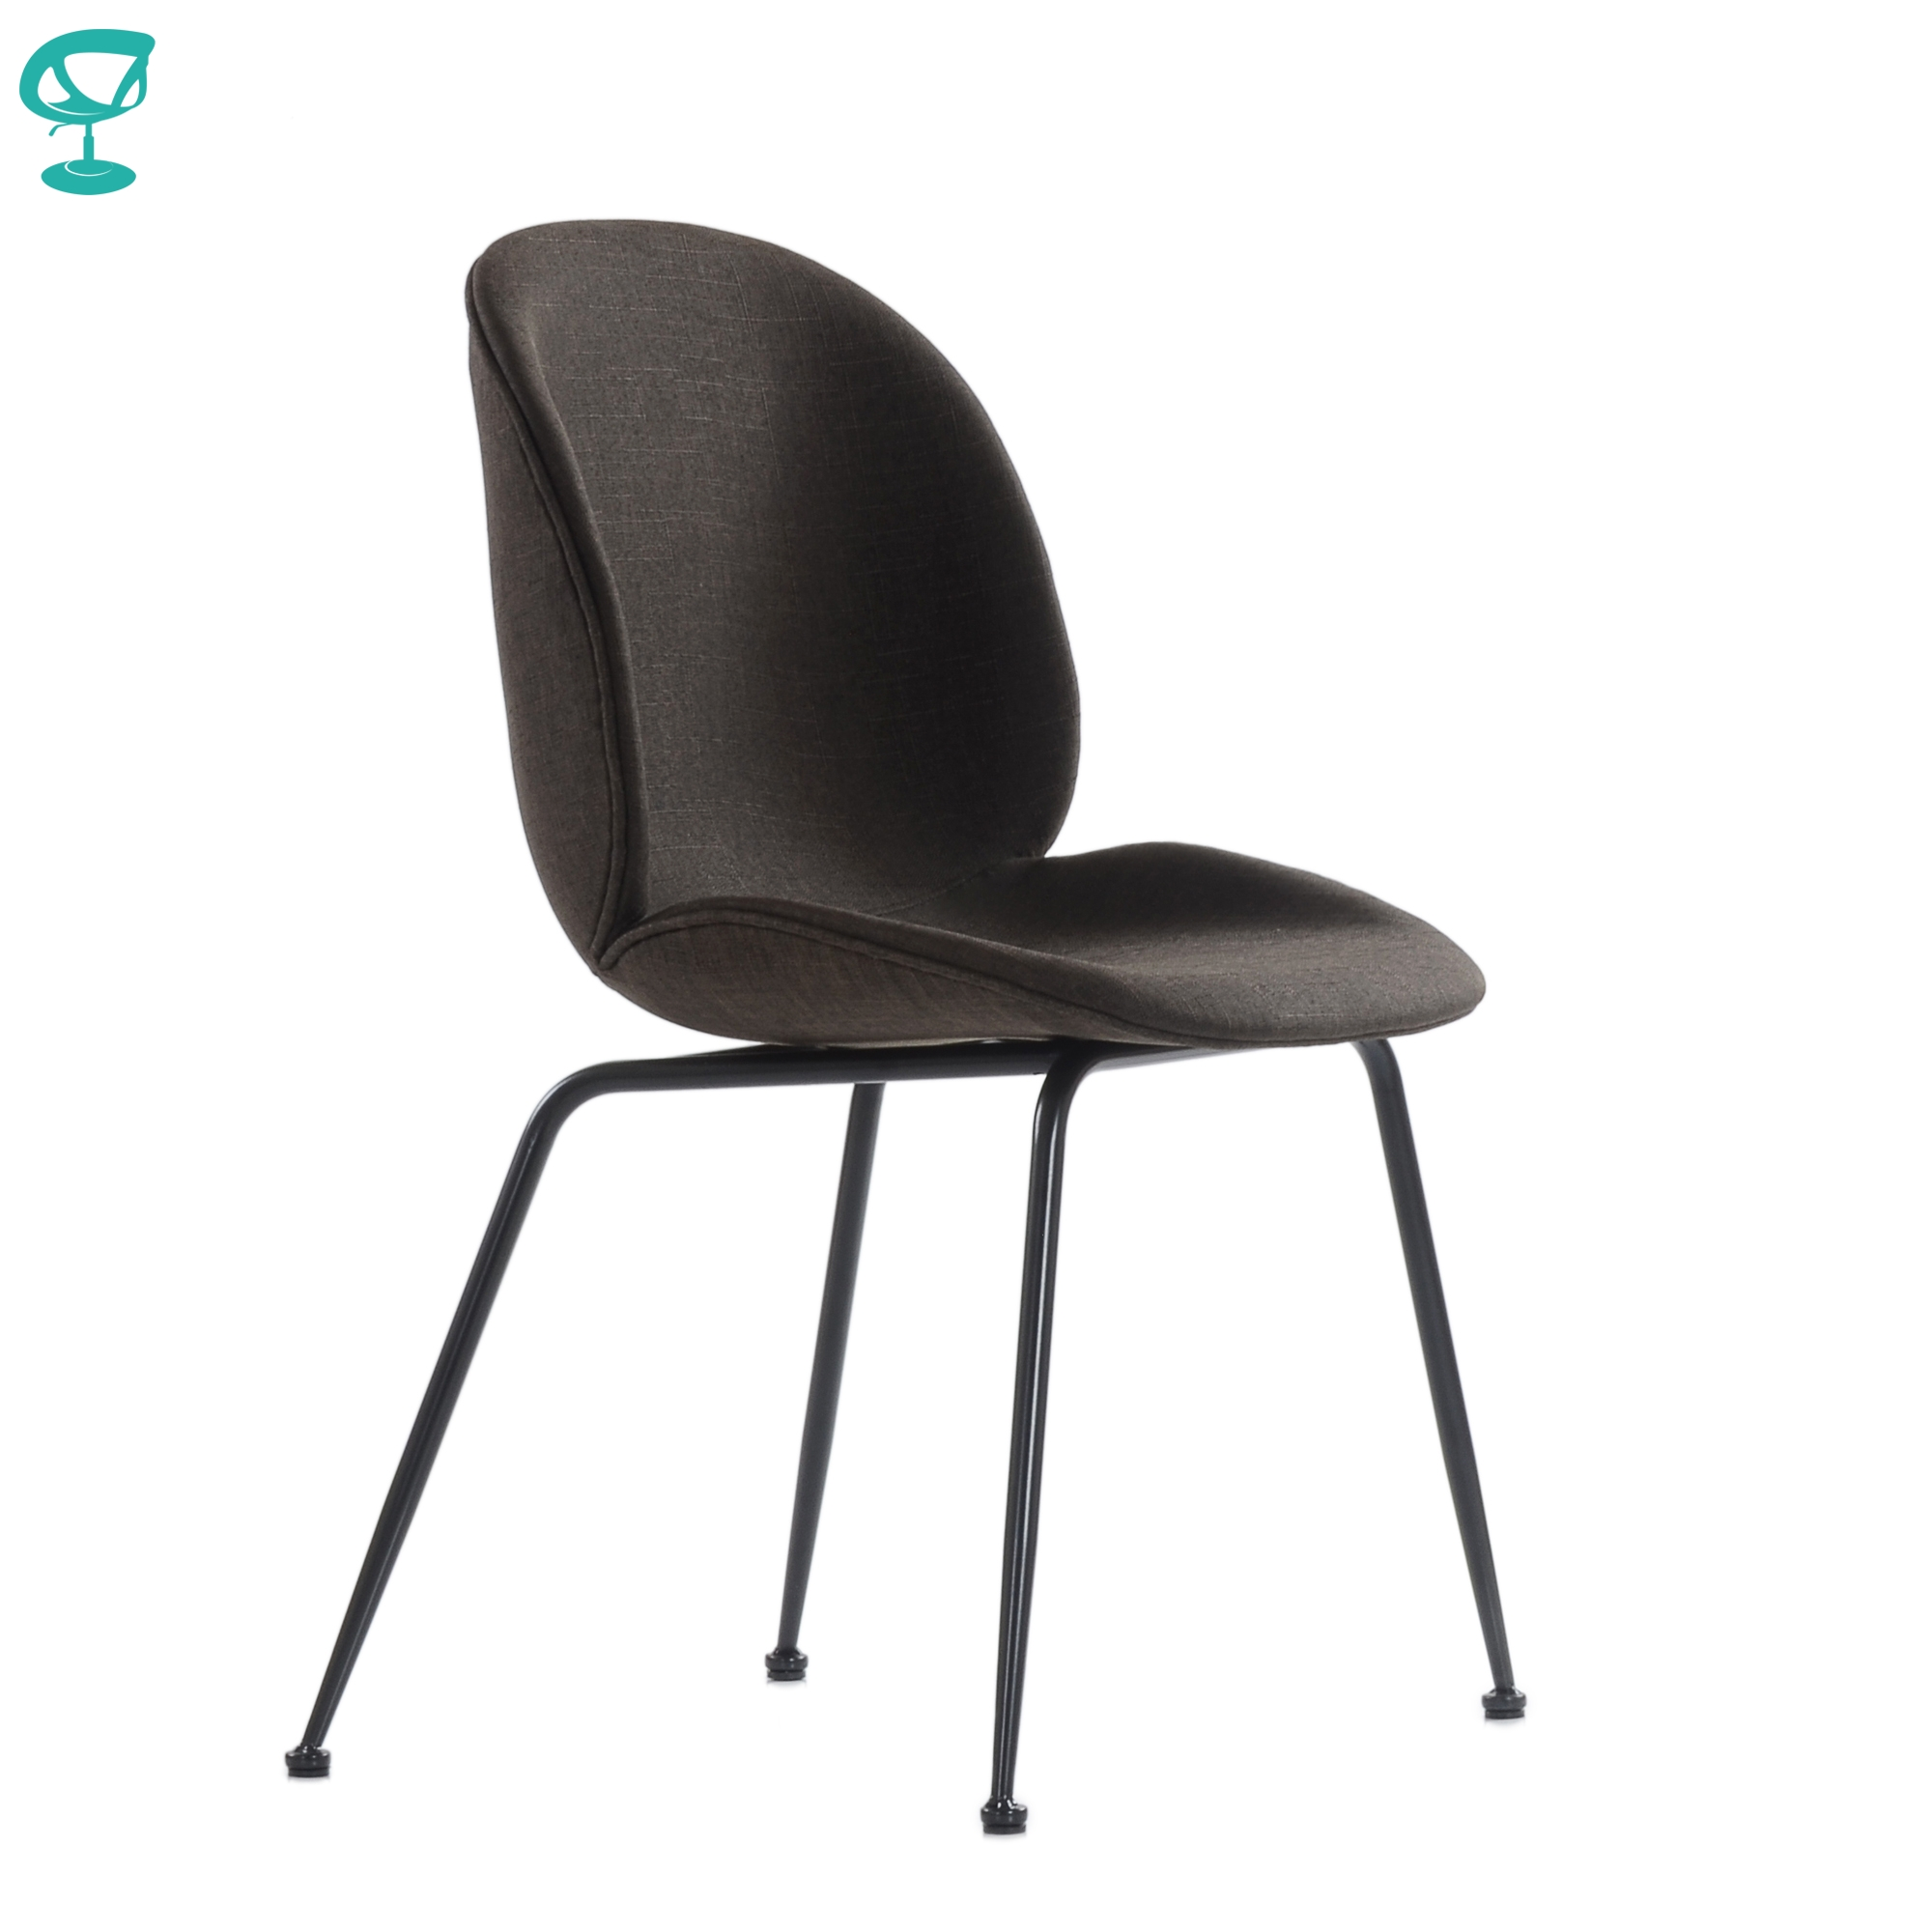 95742 Barneo S-17 Kitchen Chair On Metal Legs Seat Fabric Chair For Living Room Chair Dining Chair Furniture For Kitchen